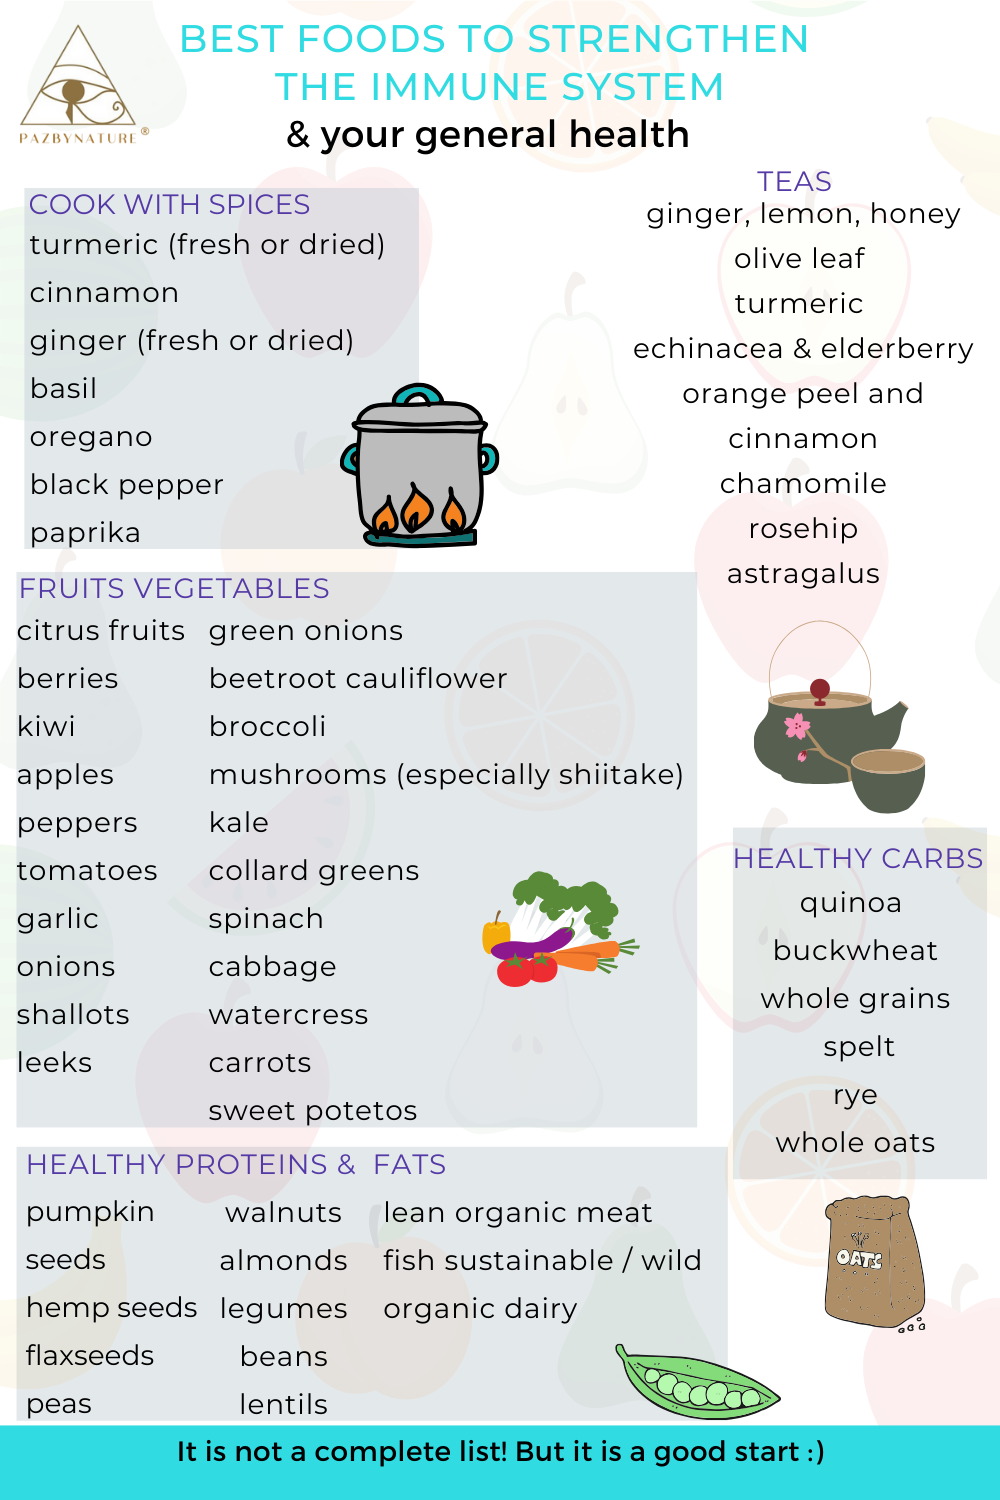 Best Foods to Strengthen the Immune System